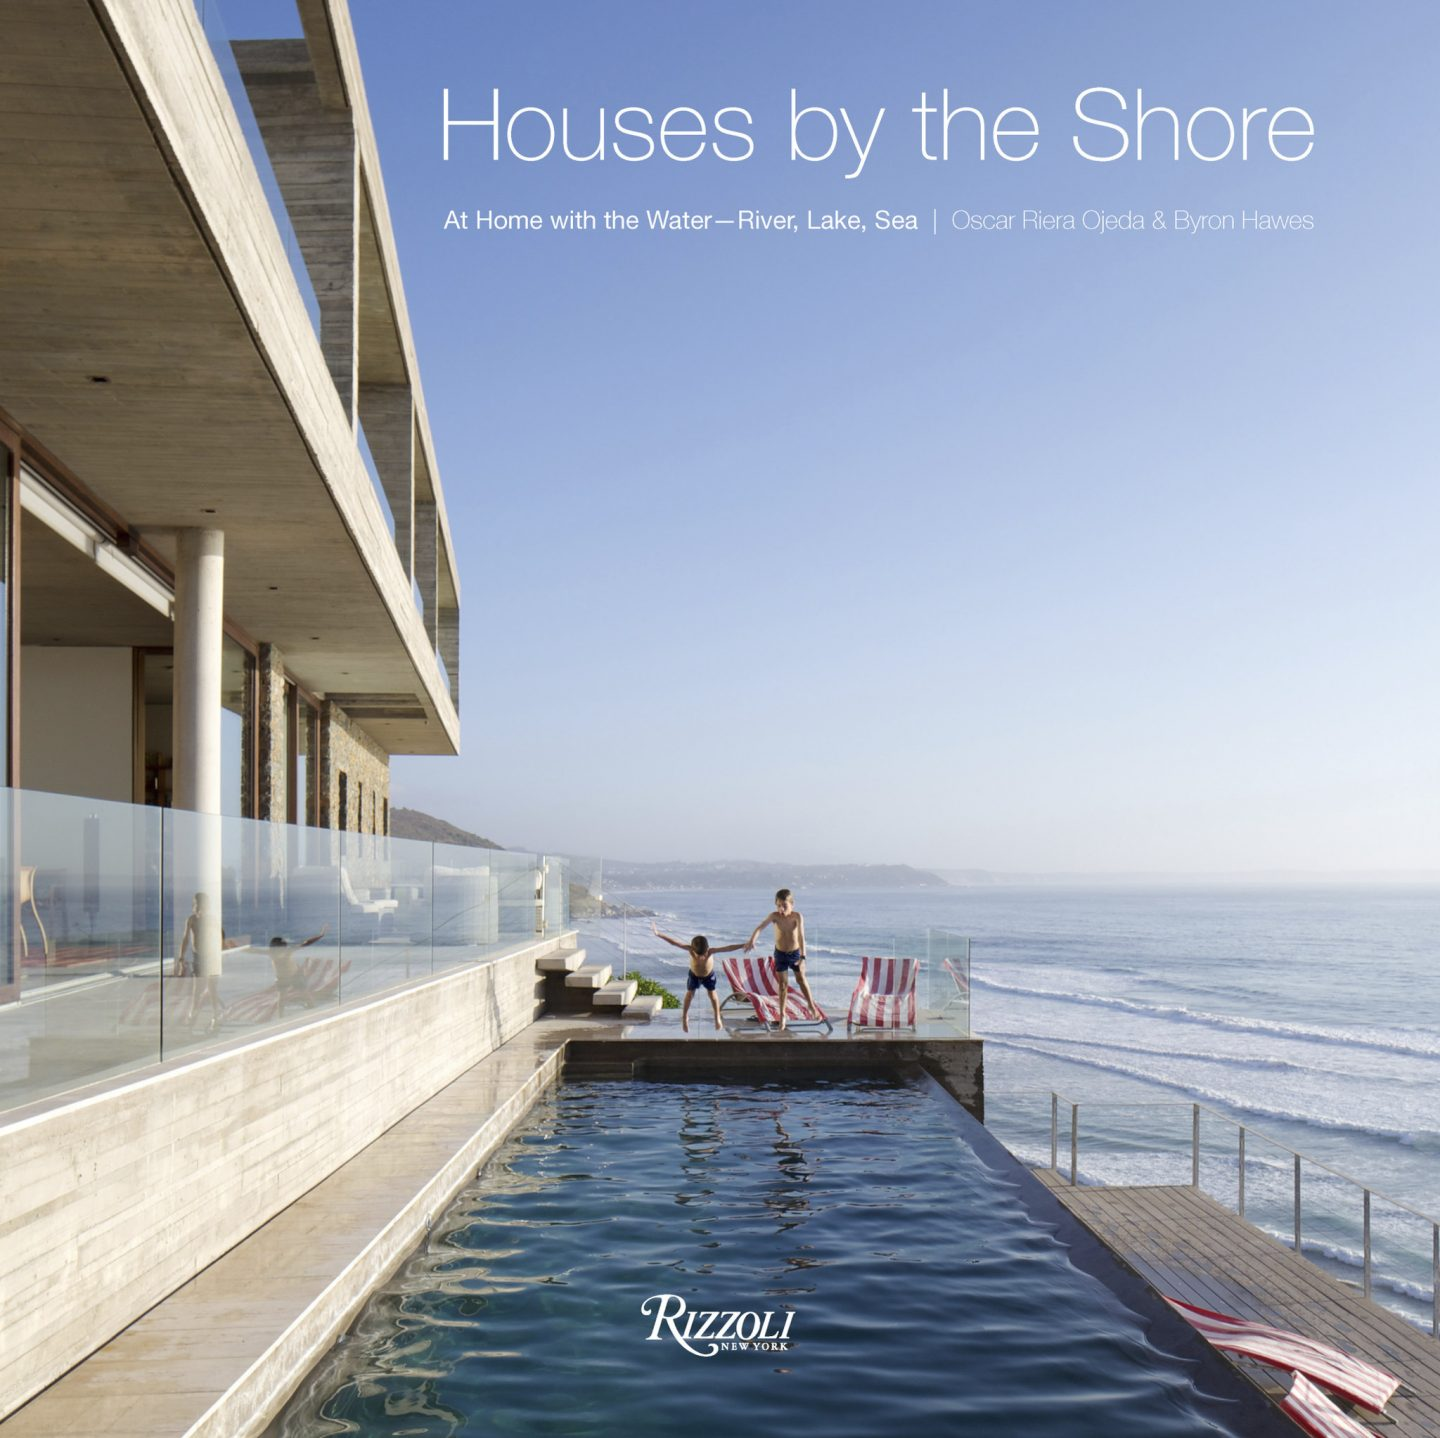 Houses by the Shore: At Home With the Water--River, Lake, Sea (Rizzoli, 2018) by Oscar Riera Ojeda and Byron Hawes.